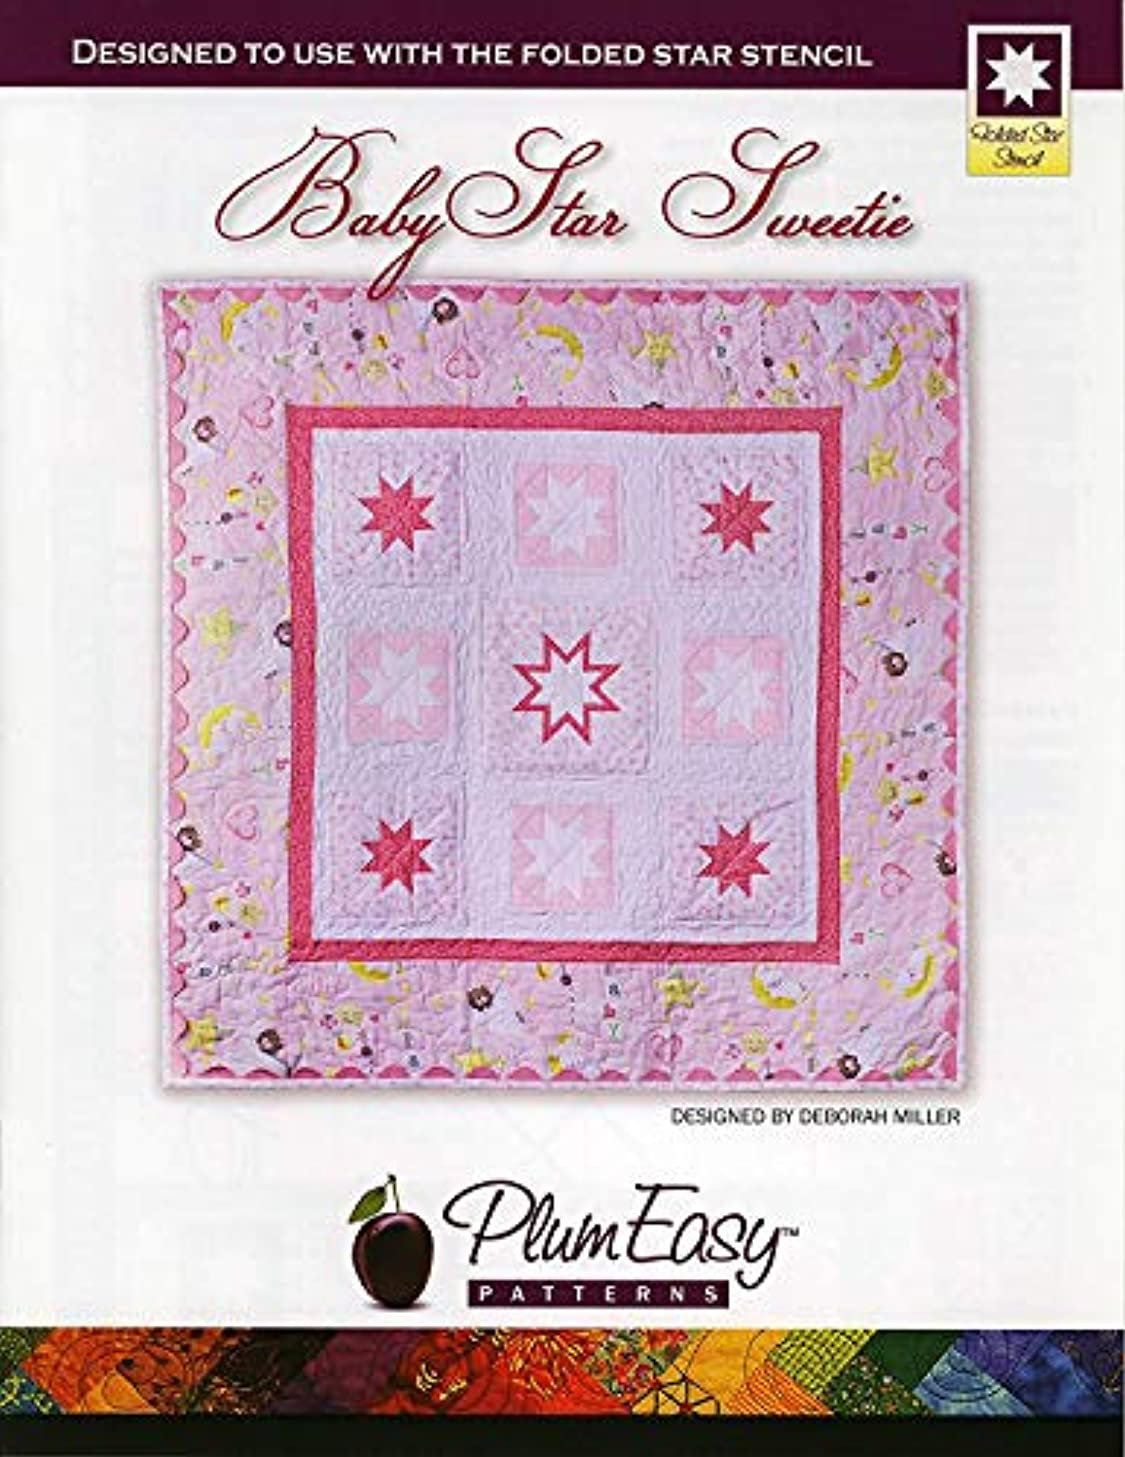 PlumEasy Patterns Baby Star Sweetie